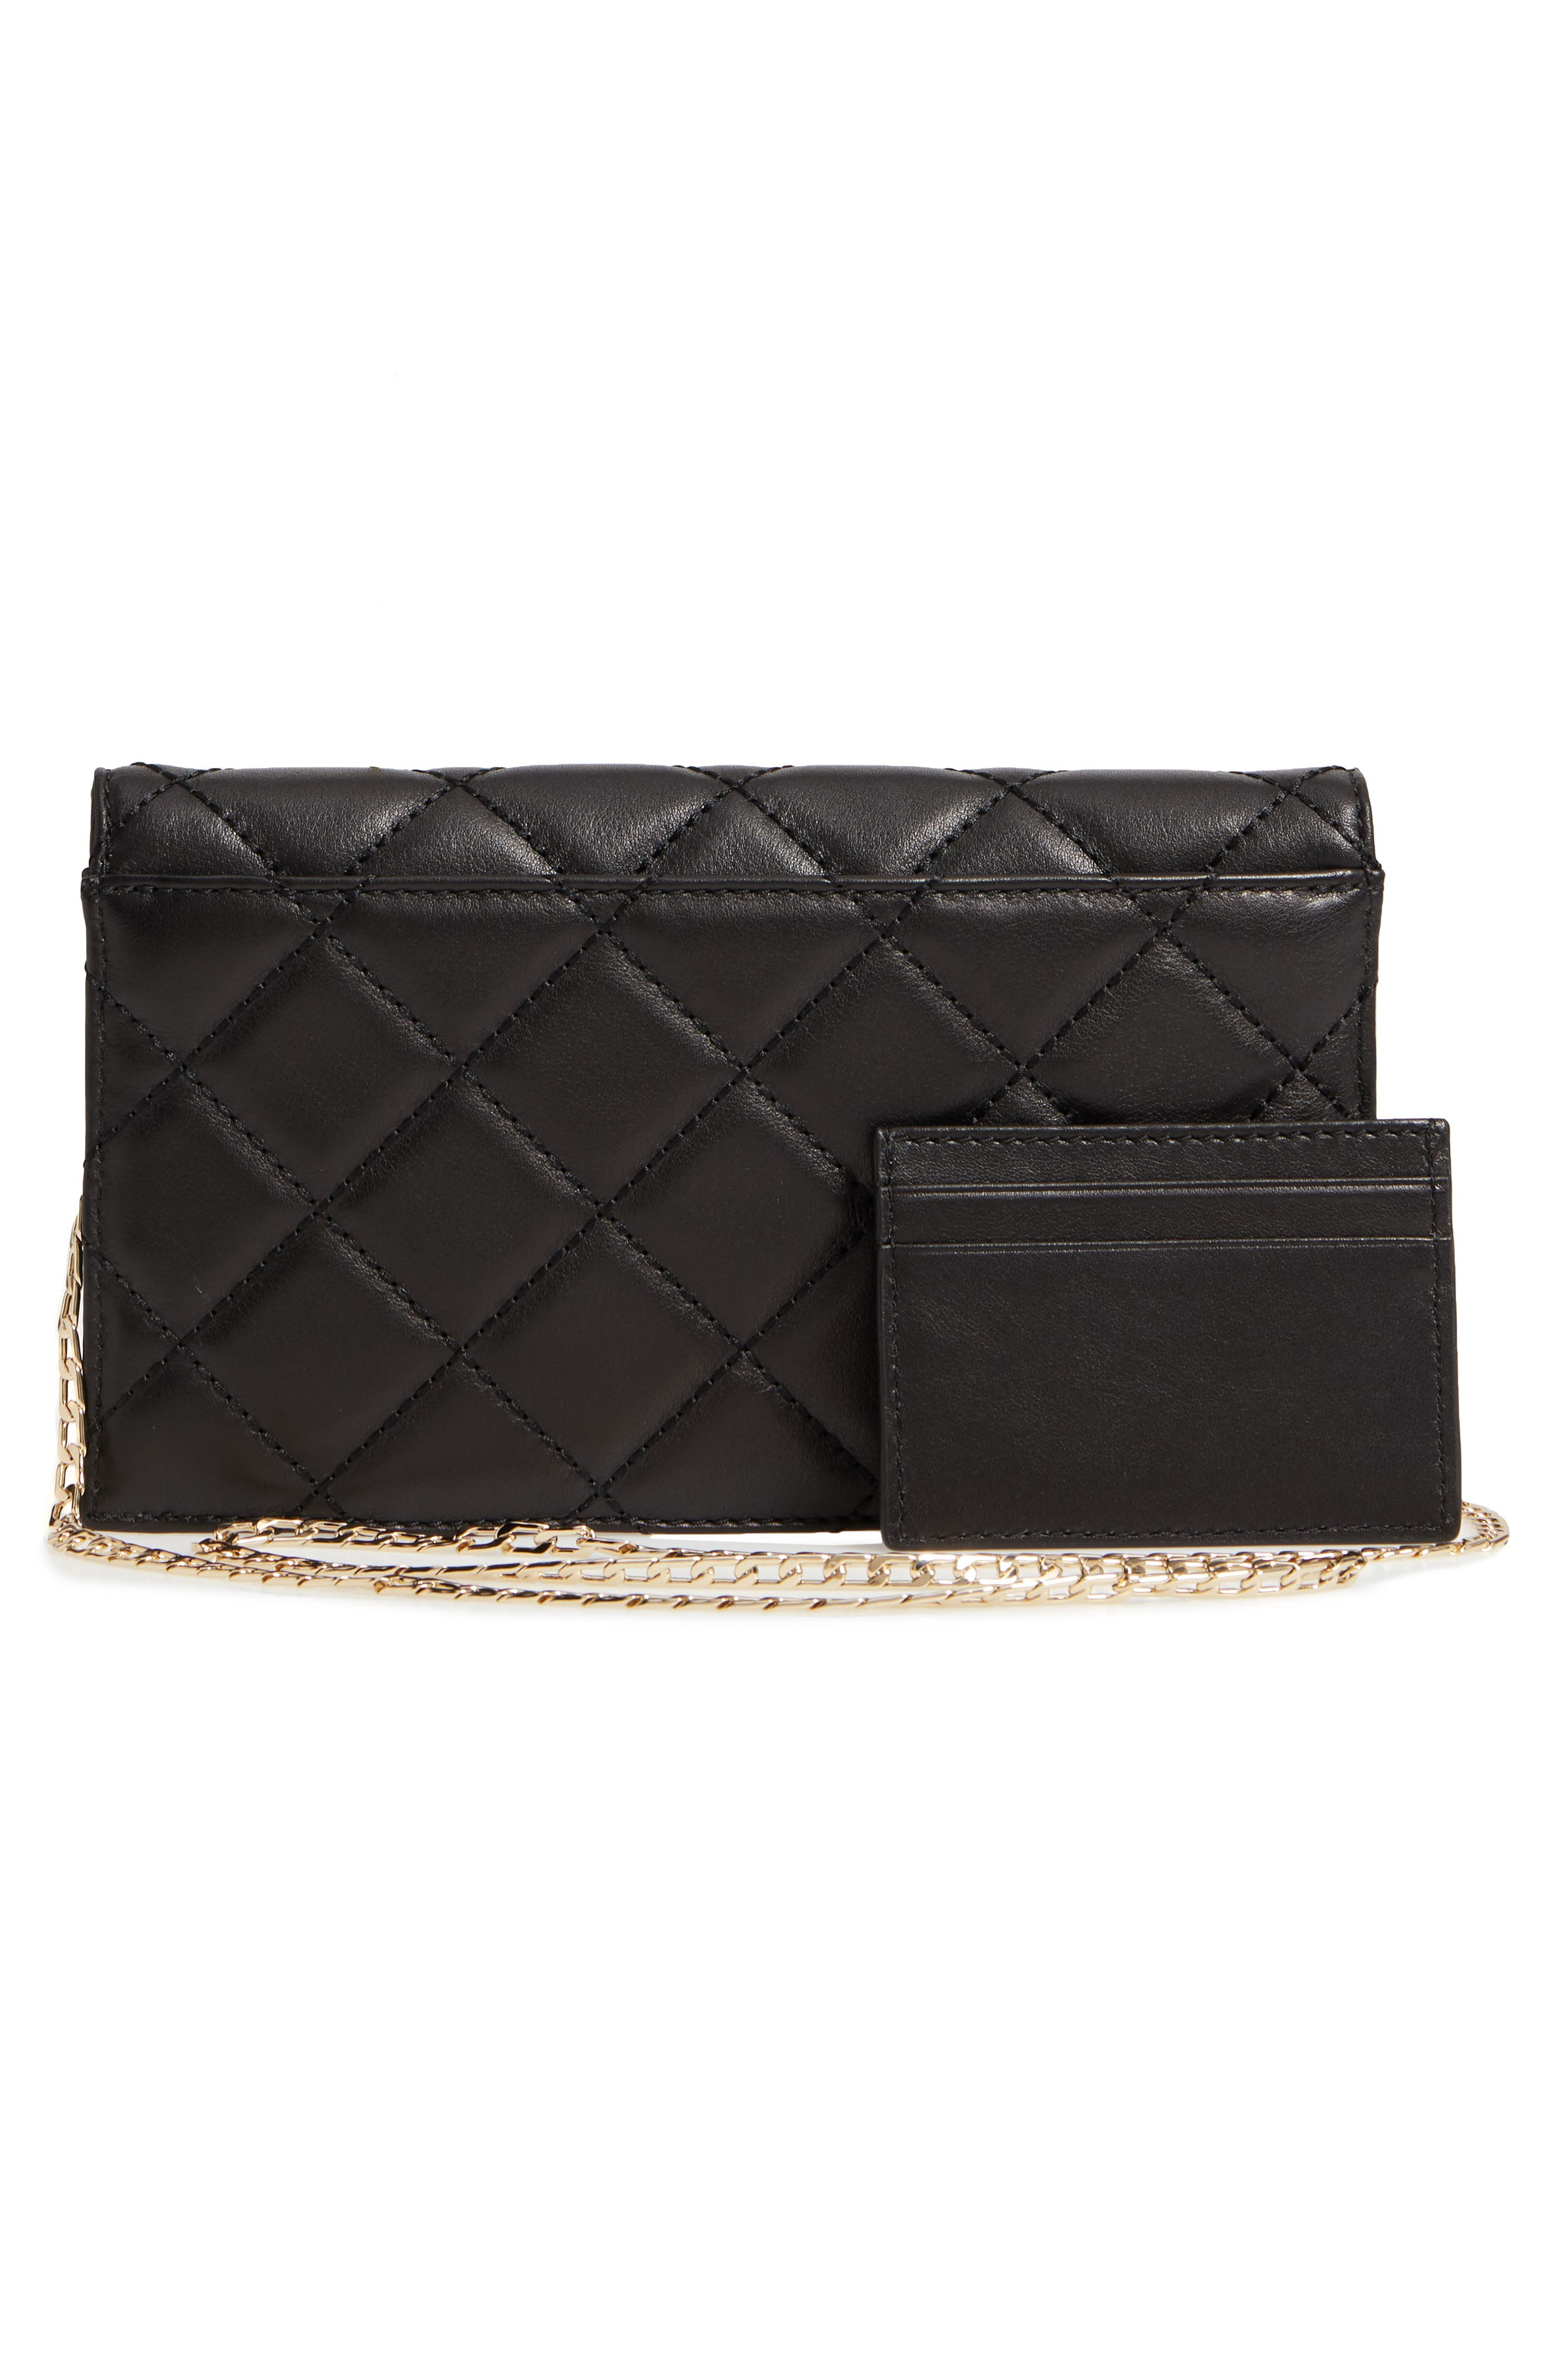 emerson place - brennan quilted leather convertible clutch & card holder,                             Alternate thumbnail 3, color,                             001